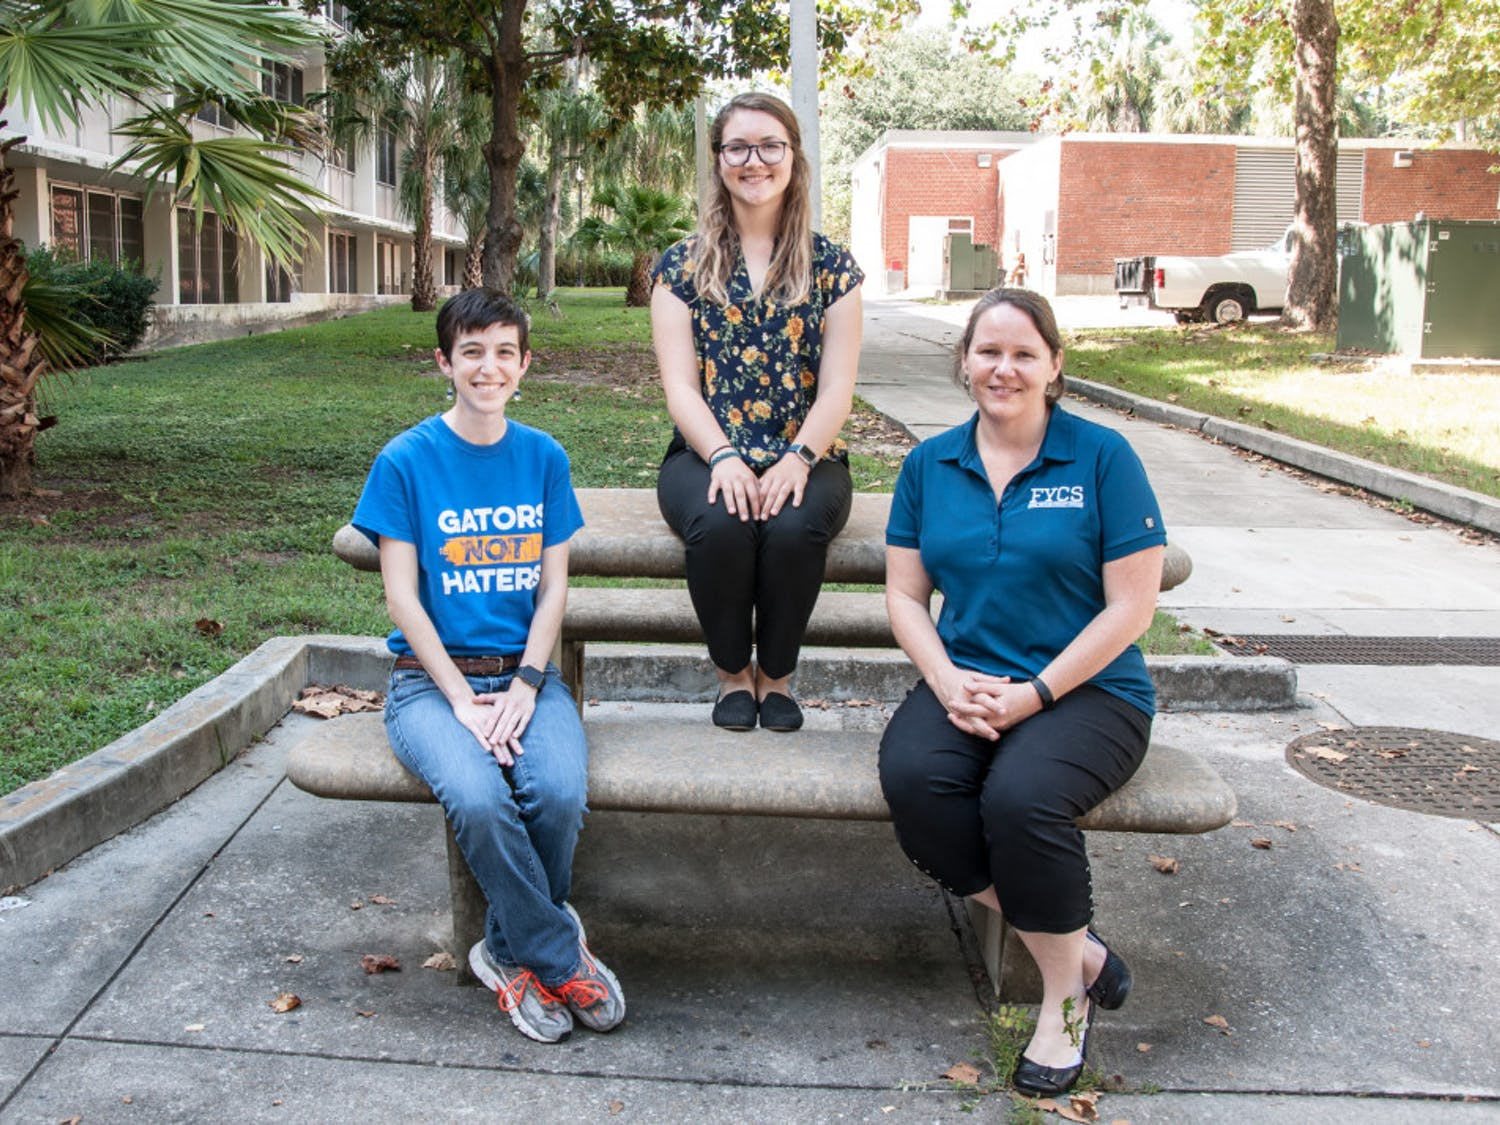 Elaine Giles (left), assistant director for UF's Brown Center for Leadership and Service, Emily Carroll (middle), former UF student, and Jennifer Jones (right), UF assistant professor, made up the volunteering research team.